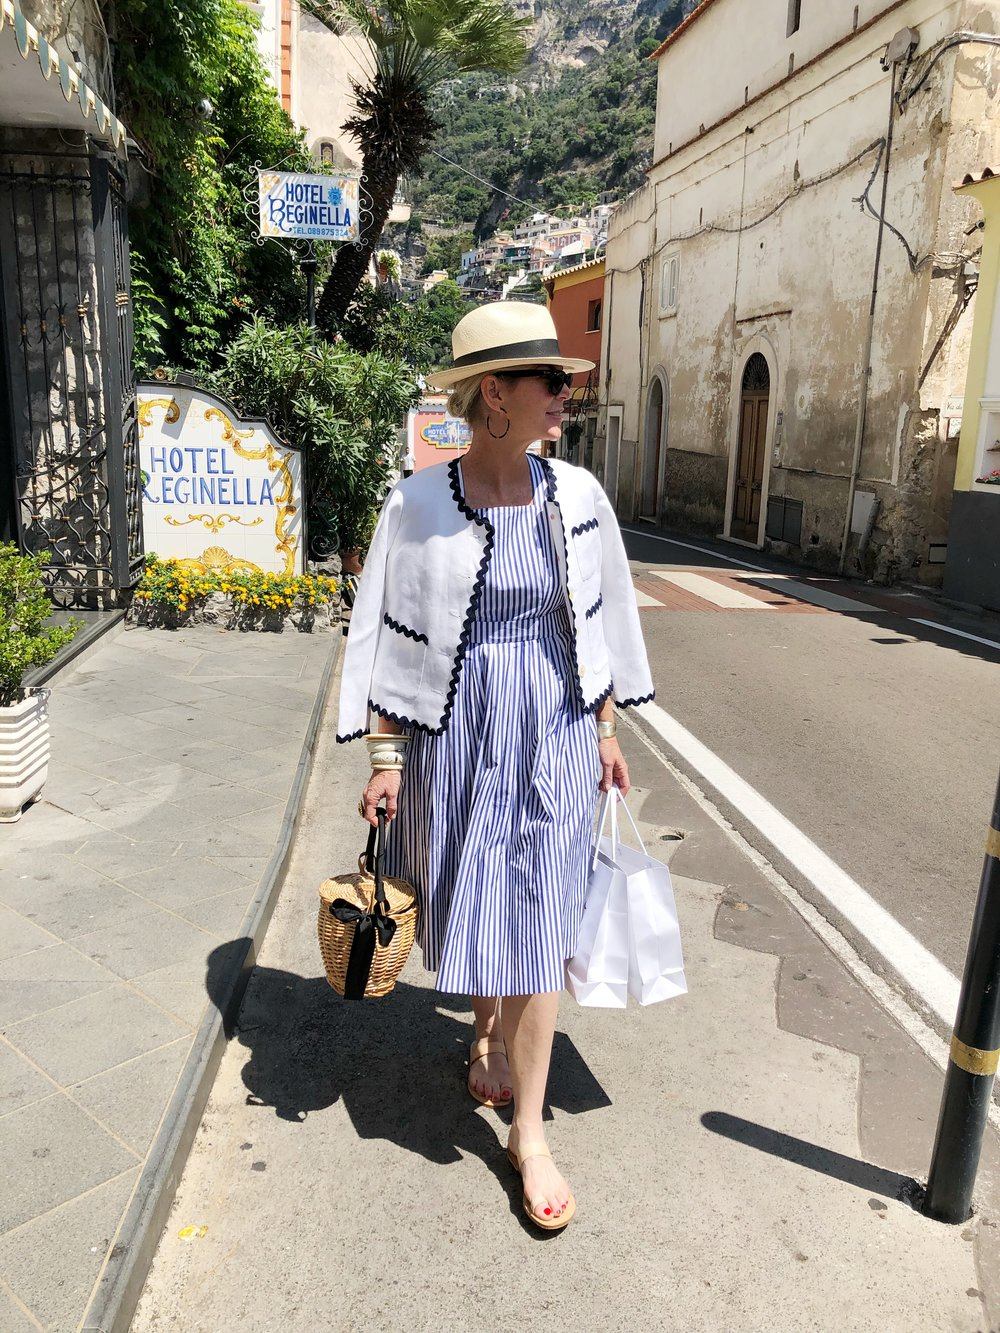 strolling the streets of positano!